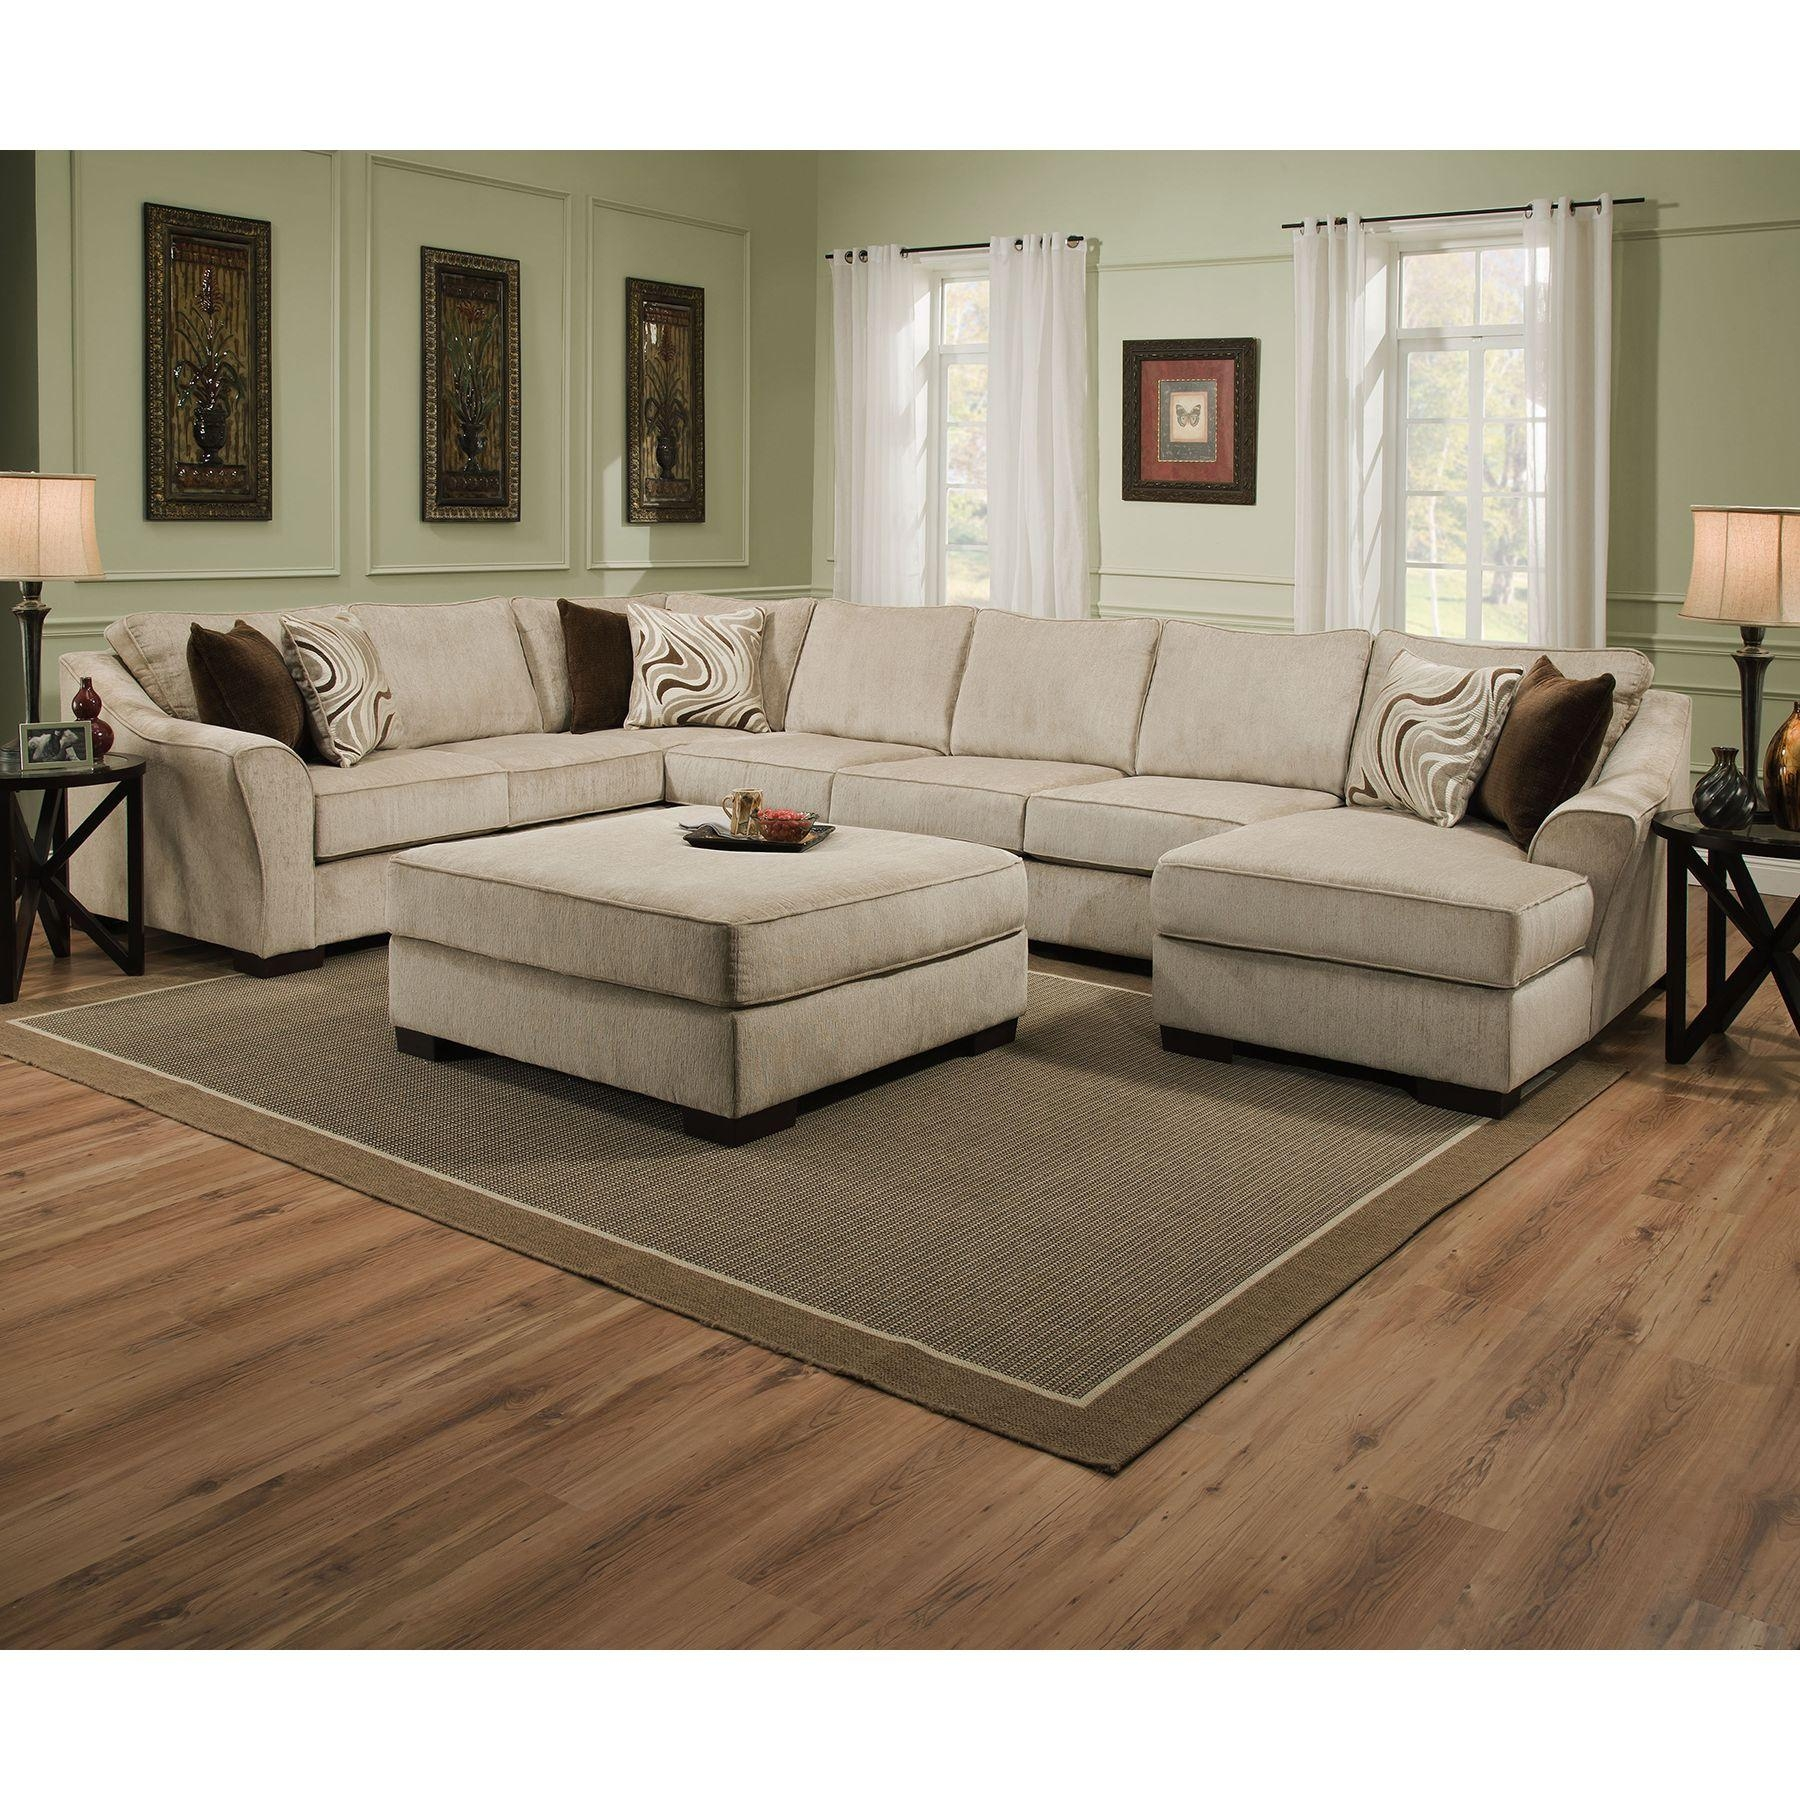 Furniture: Comfy Sectional Sofa | Huge Sectional Sofas | Extra Throughout Large Comfortable Sectional Sofas (View 15 of 20)